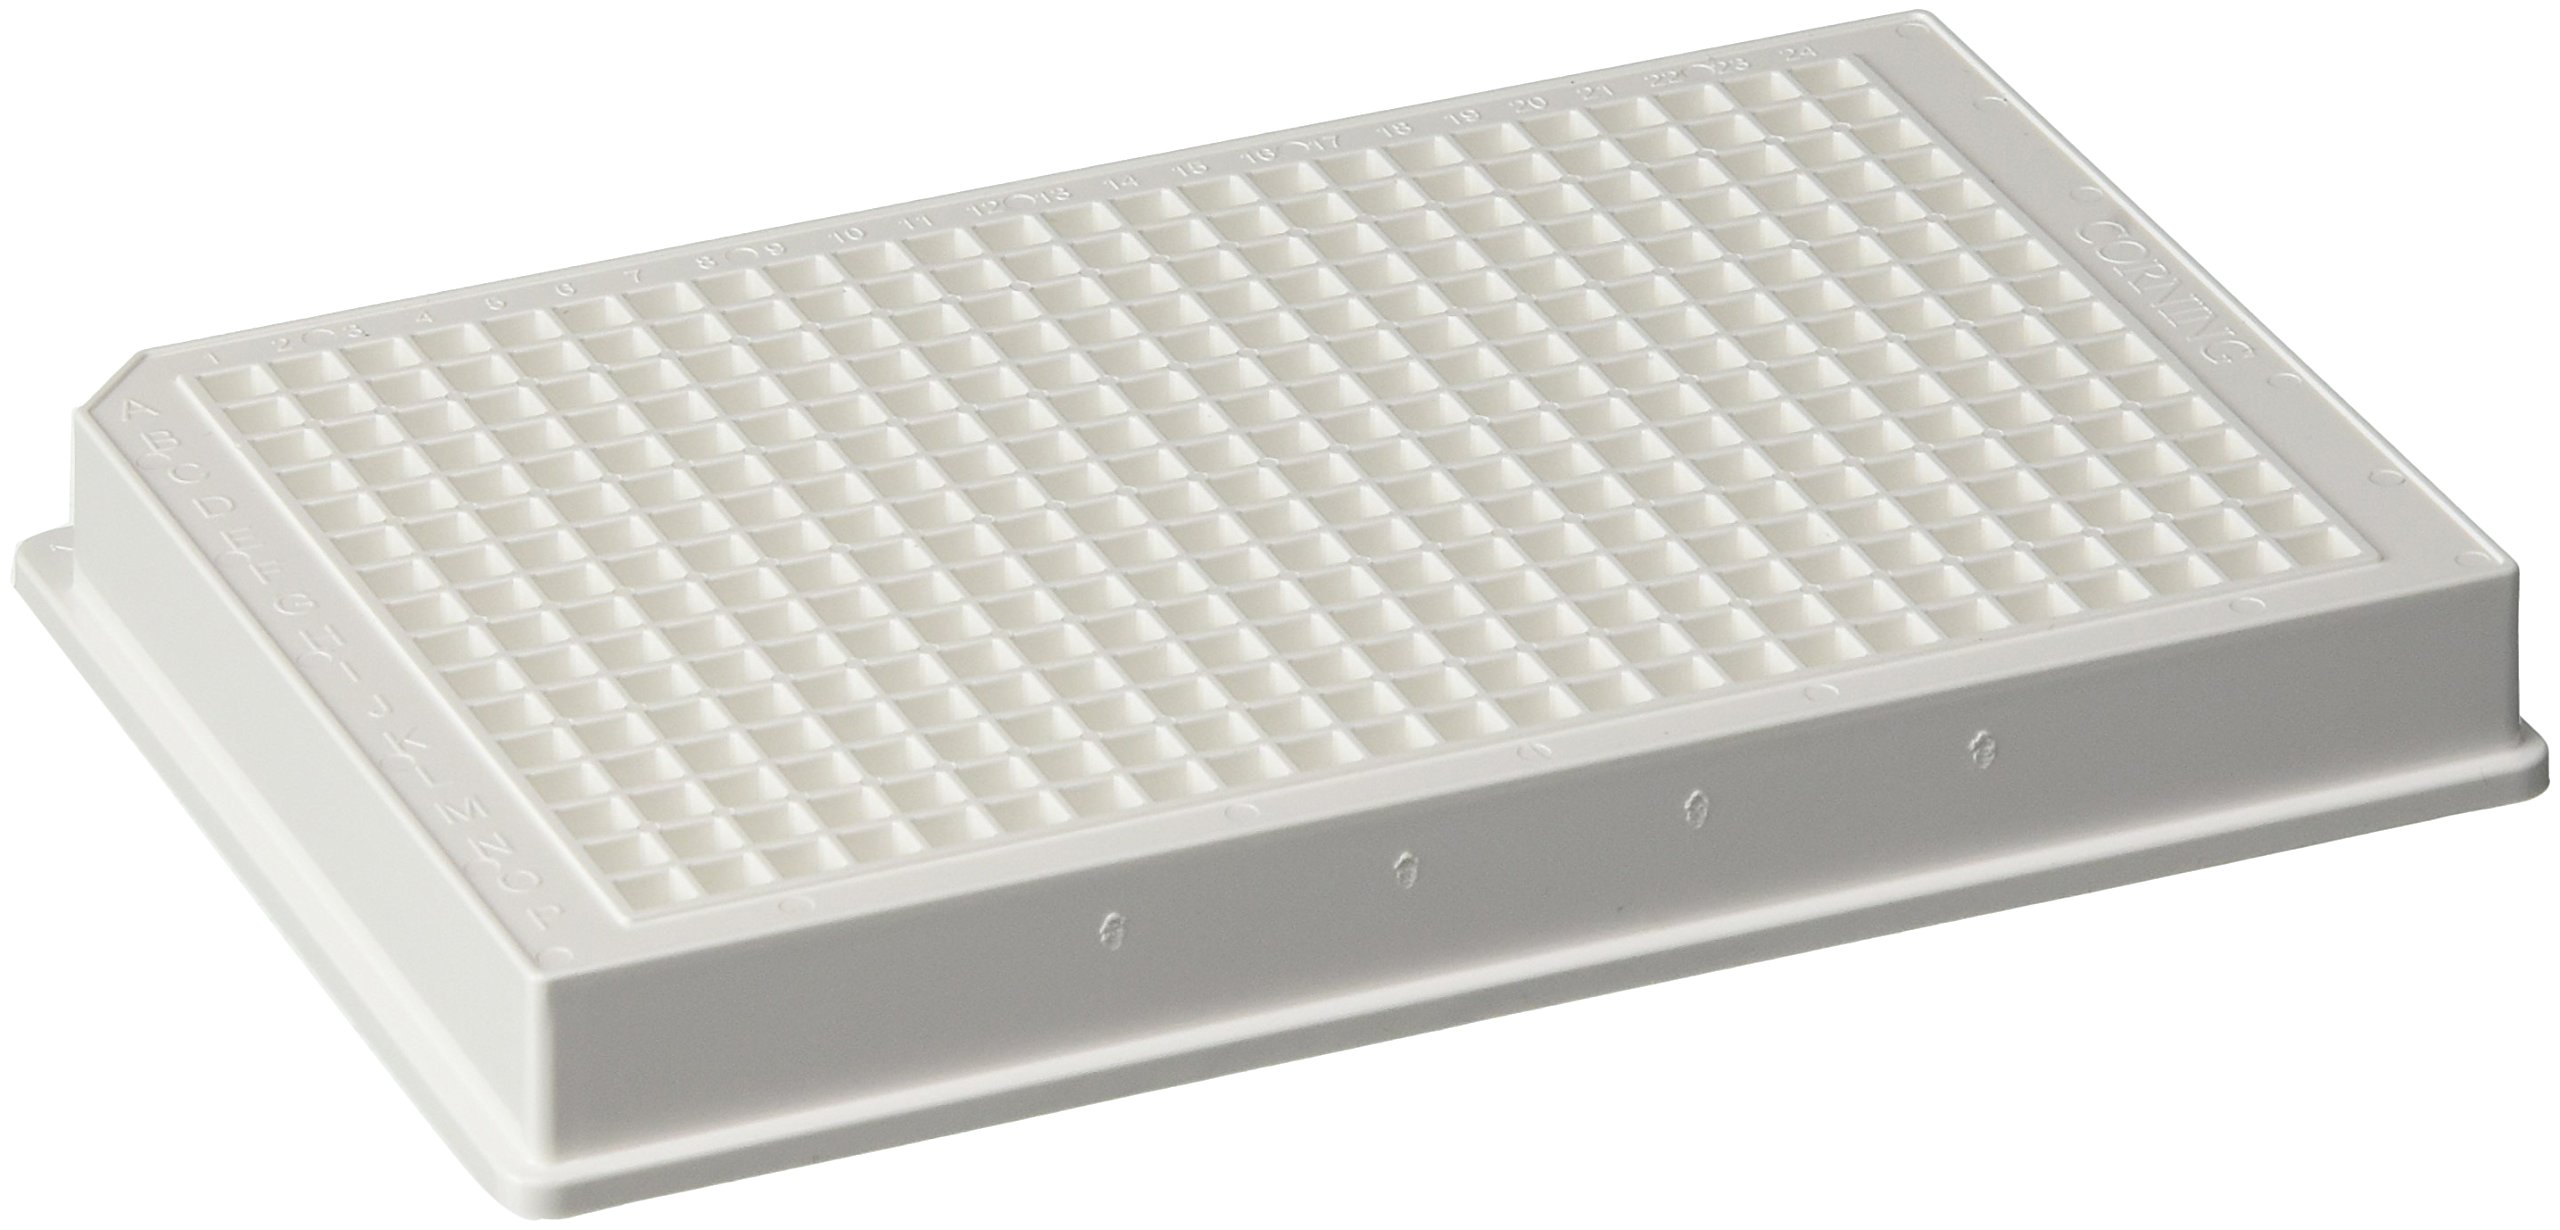 Corning Polystyrene Nonsterile 384 Well Low Flange White Flat Bottom Polystyrene High Bind Microplate, without Lid (Case of 50)